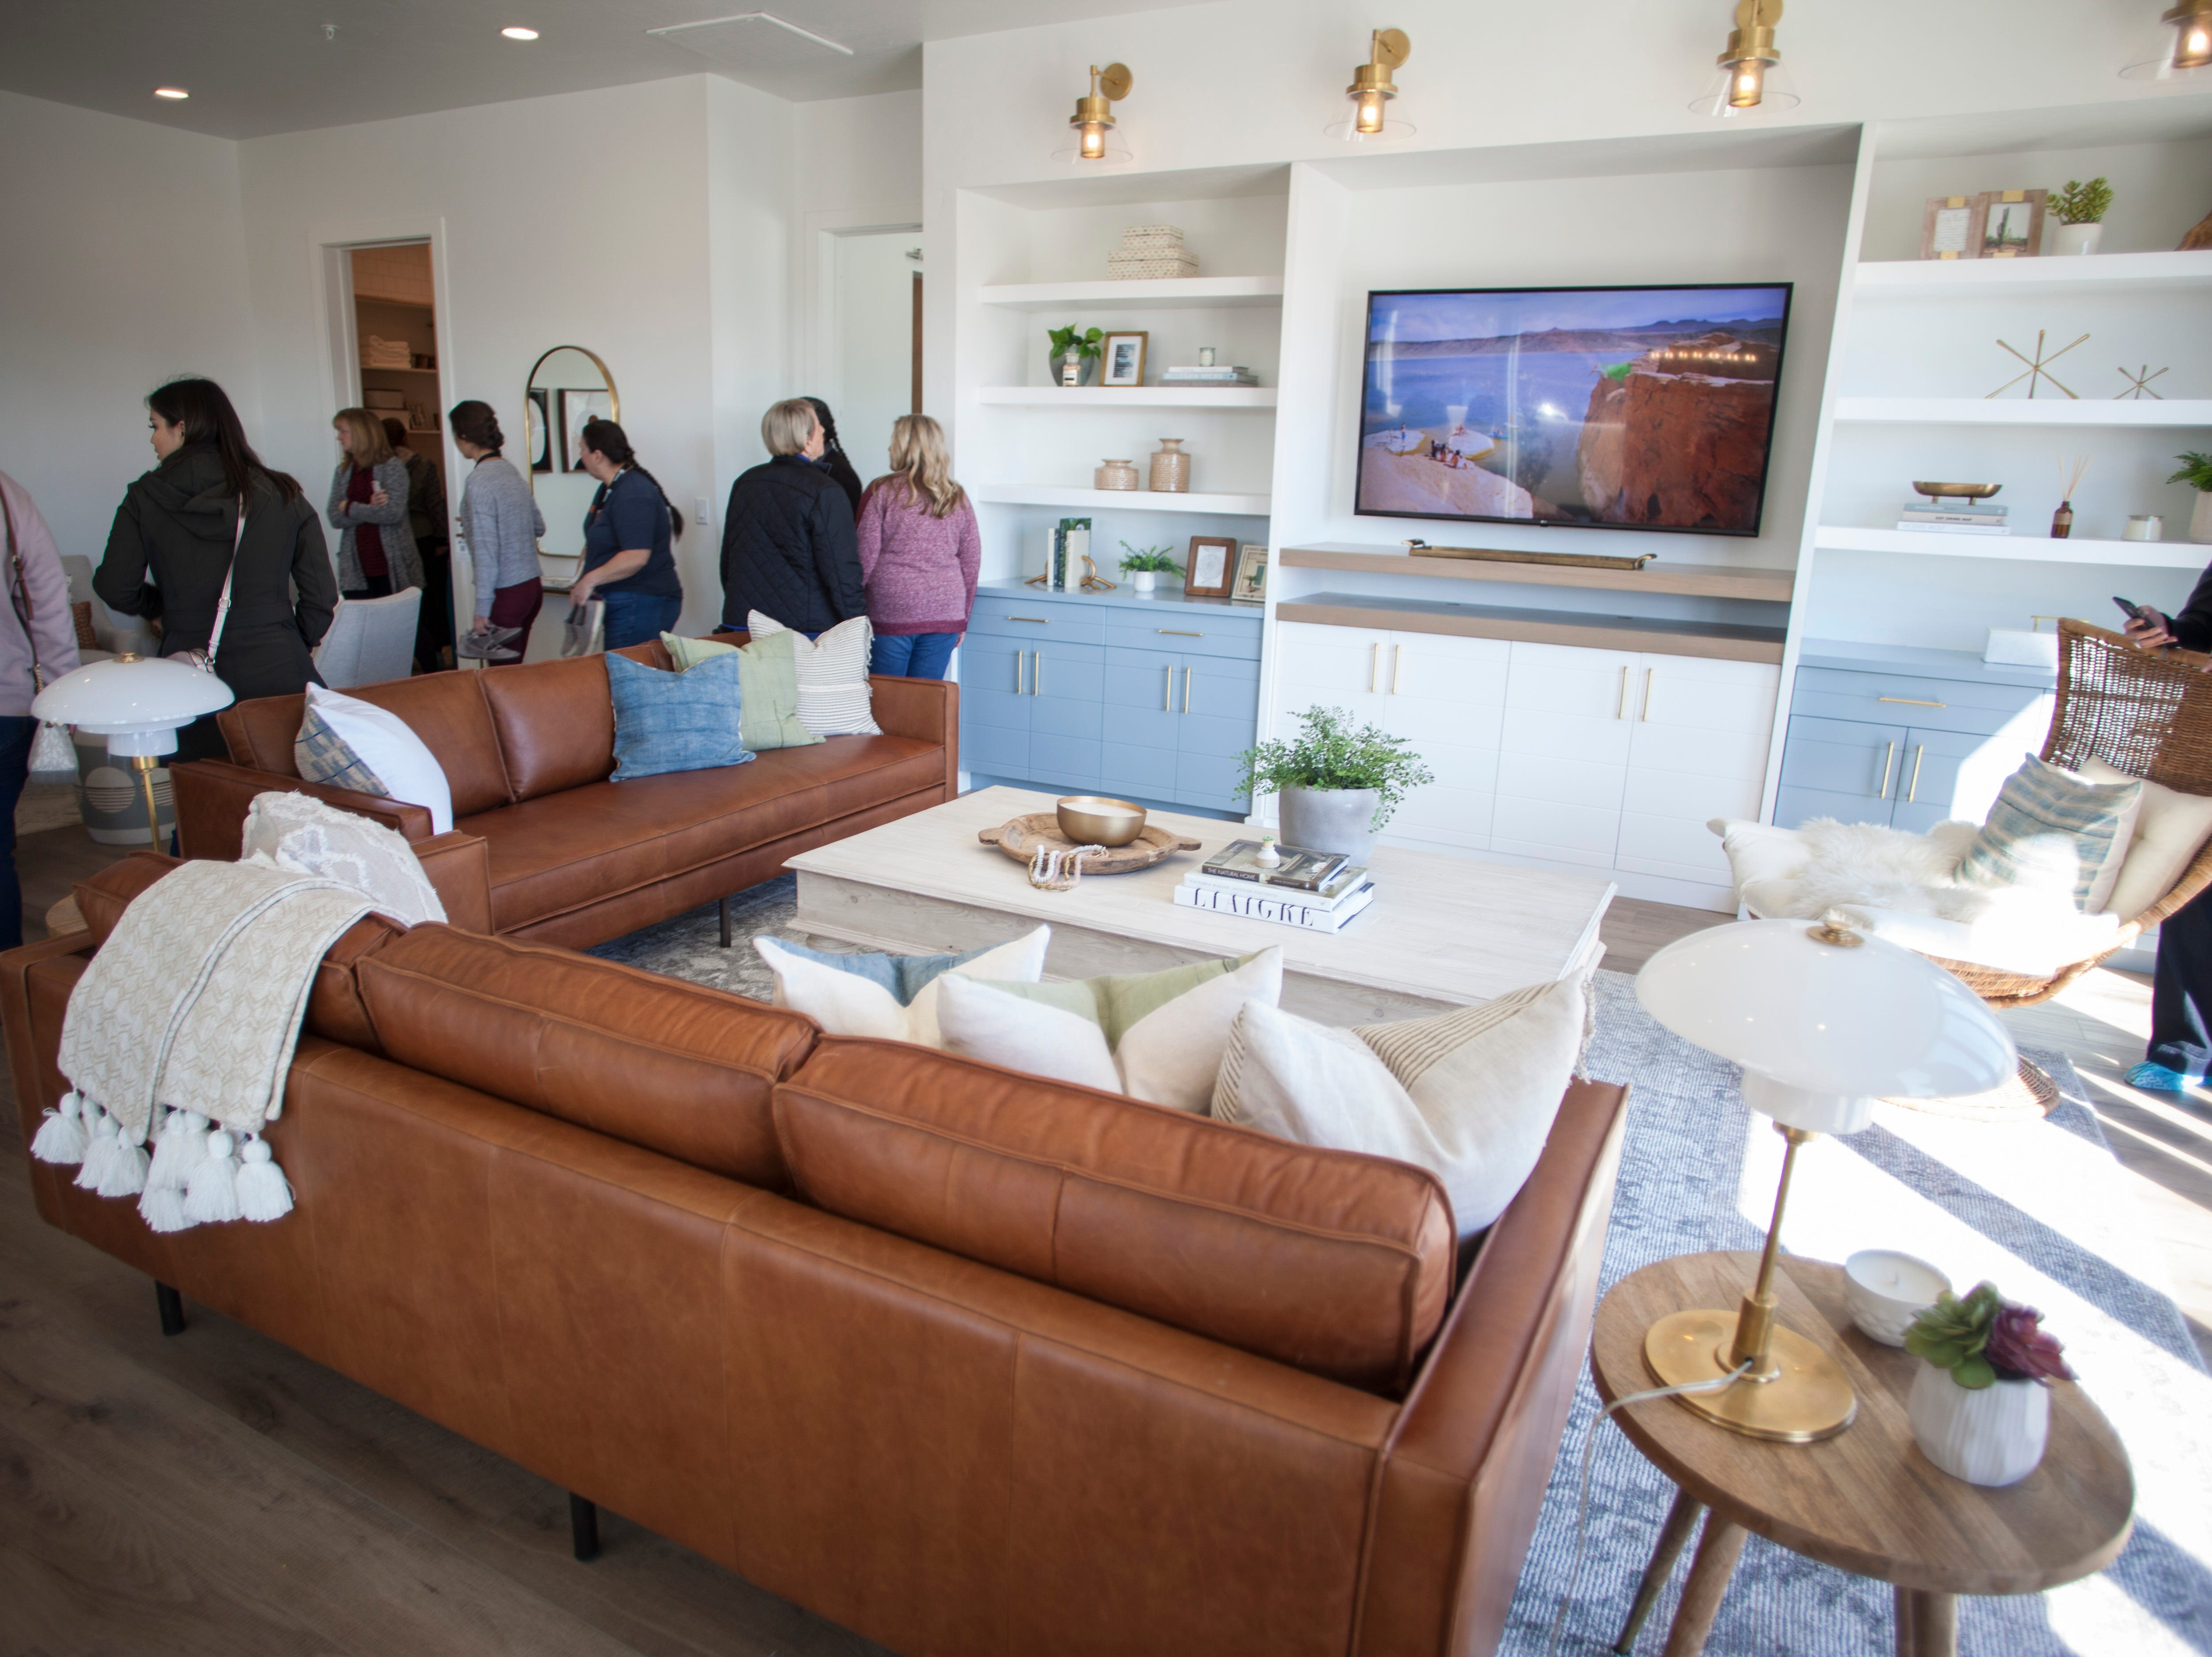 House number 3, The Eighth at Coral Canyon, on the 2019 Parade of Homes Saturday, Feb. 23, 2019.